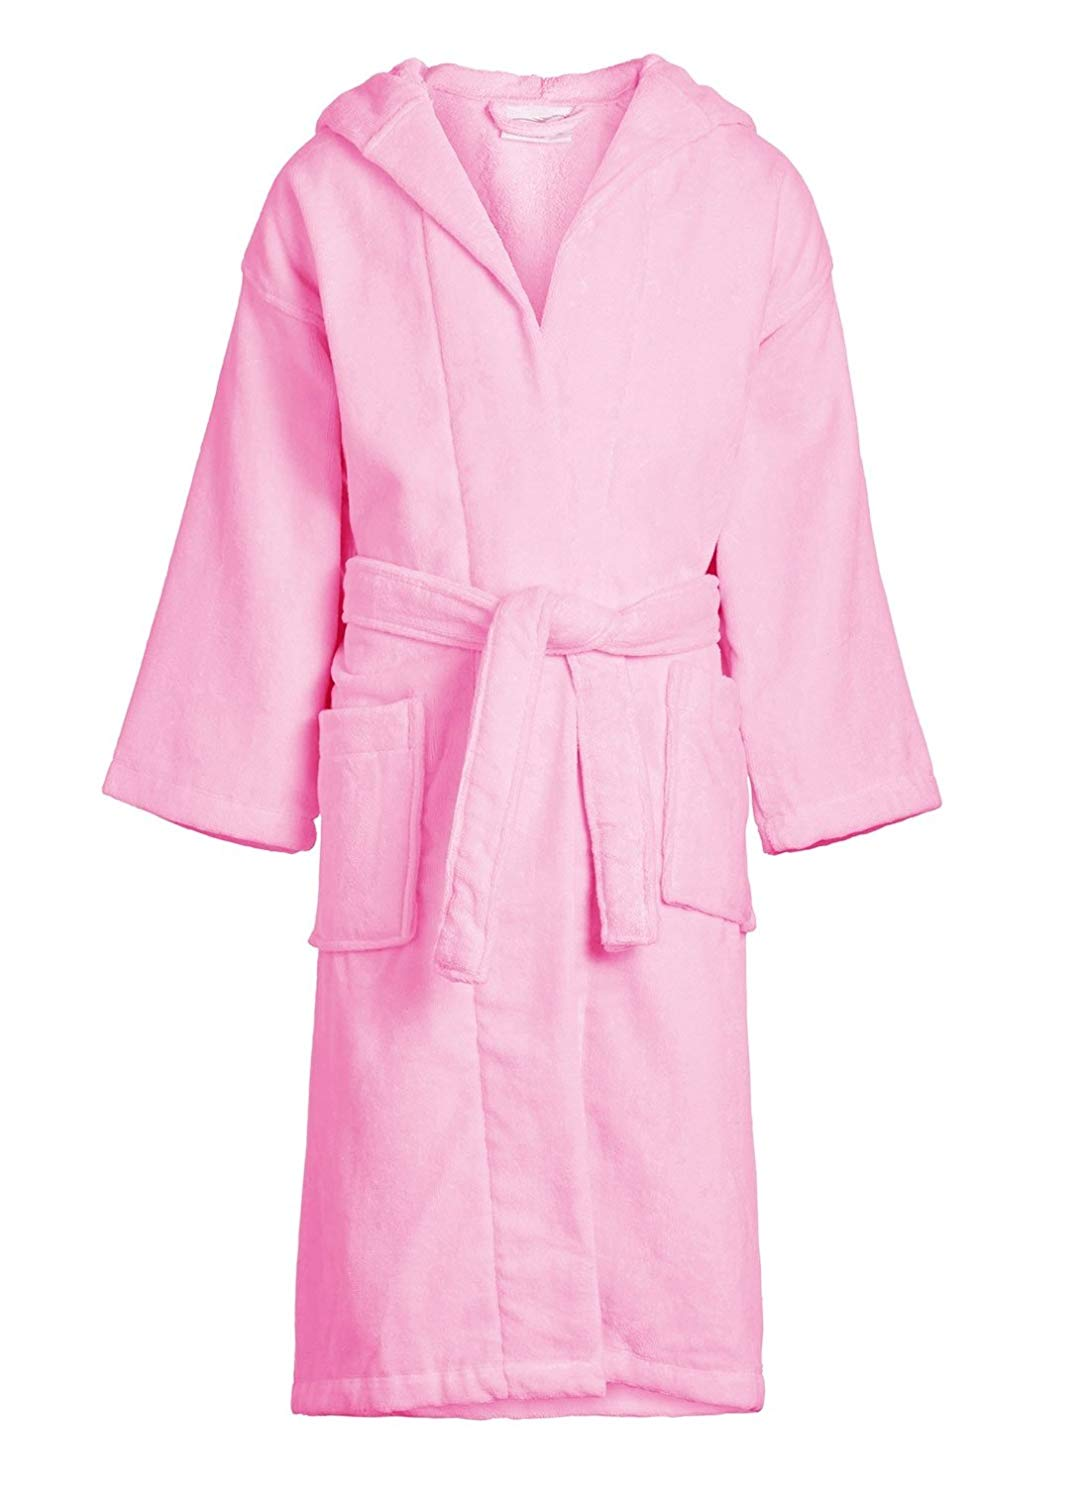 58891c0548573 Get Quotations · ELEGANI Kids Terry Velour Hooded Robe, Terry Cloth Kids  Hooded Robe Bathrobe for Boys and